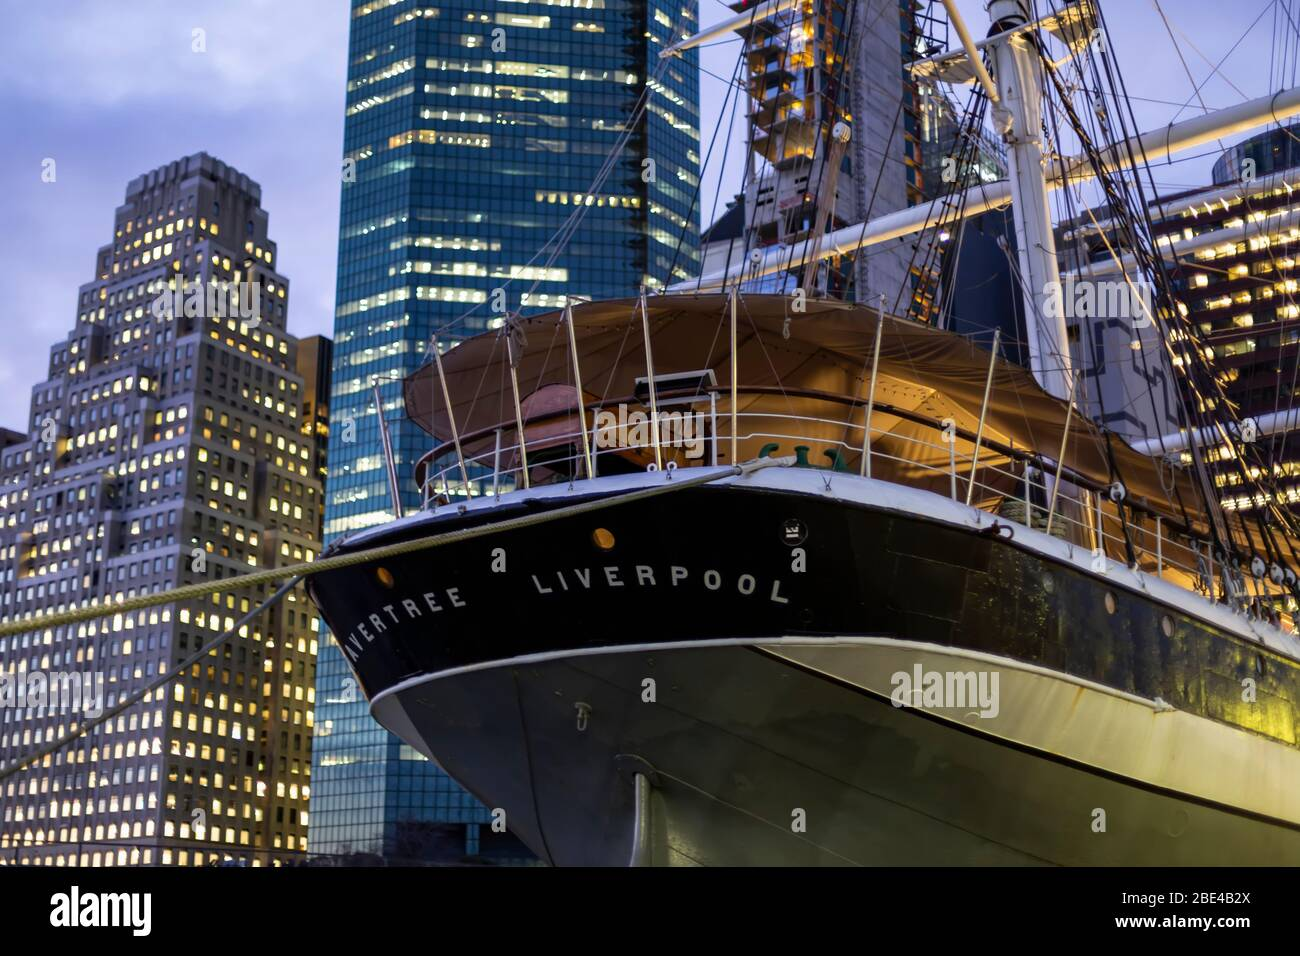 Wavertree, a sailing ship at South Street Seaport, Museum, Manhattan; New York City, New York, United States of America Stock Photo